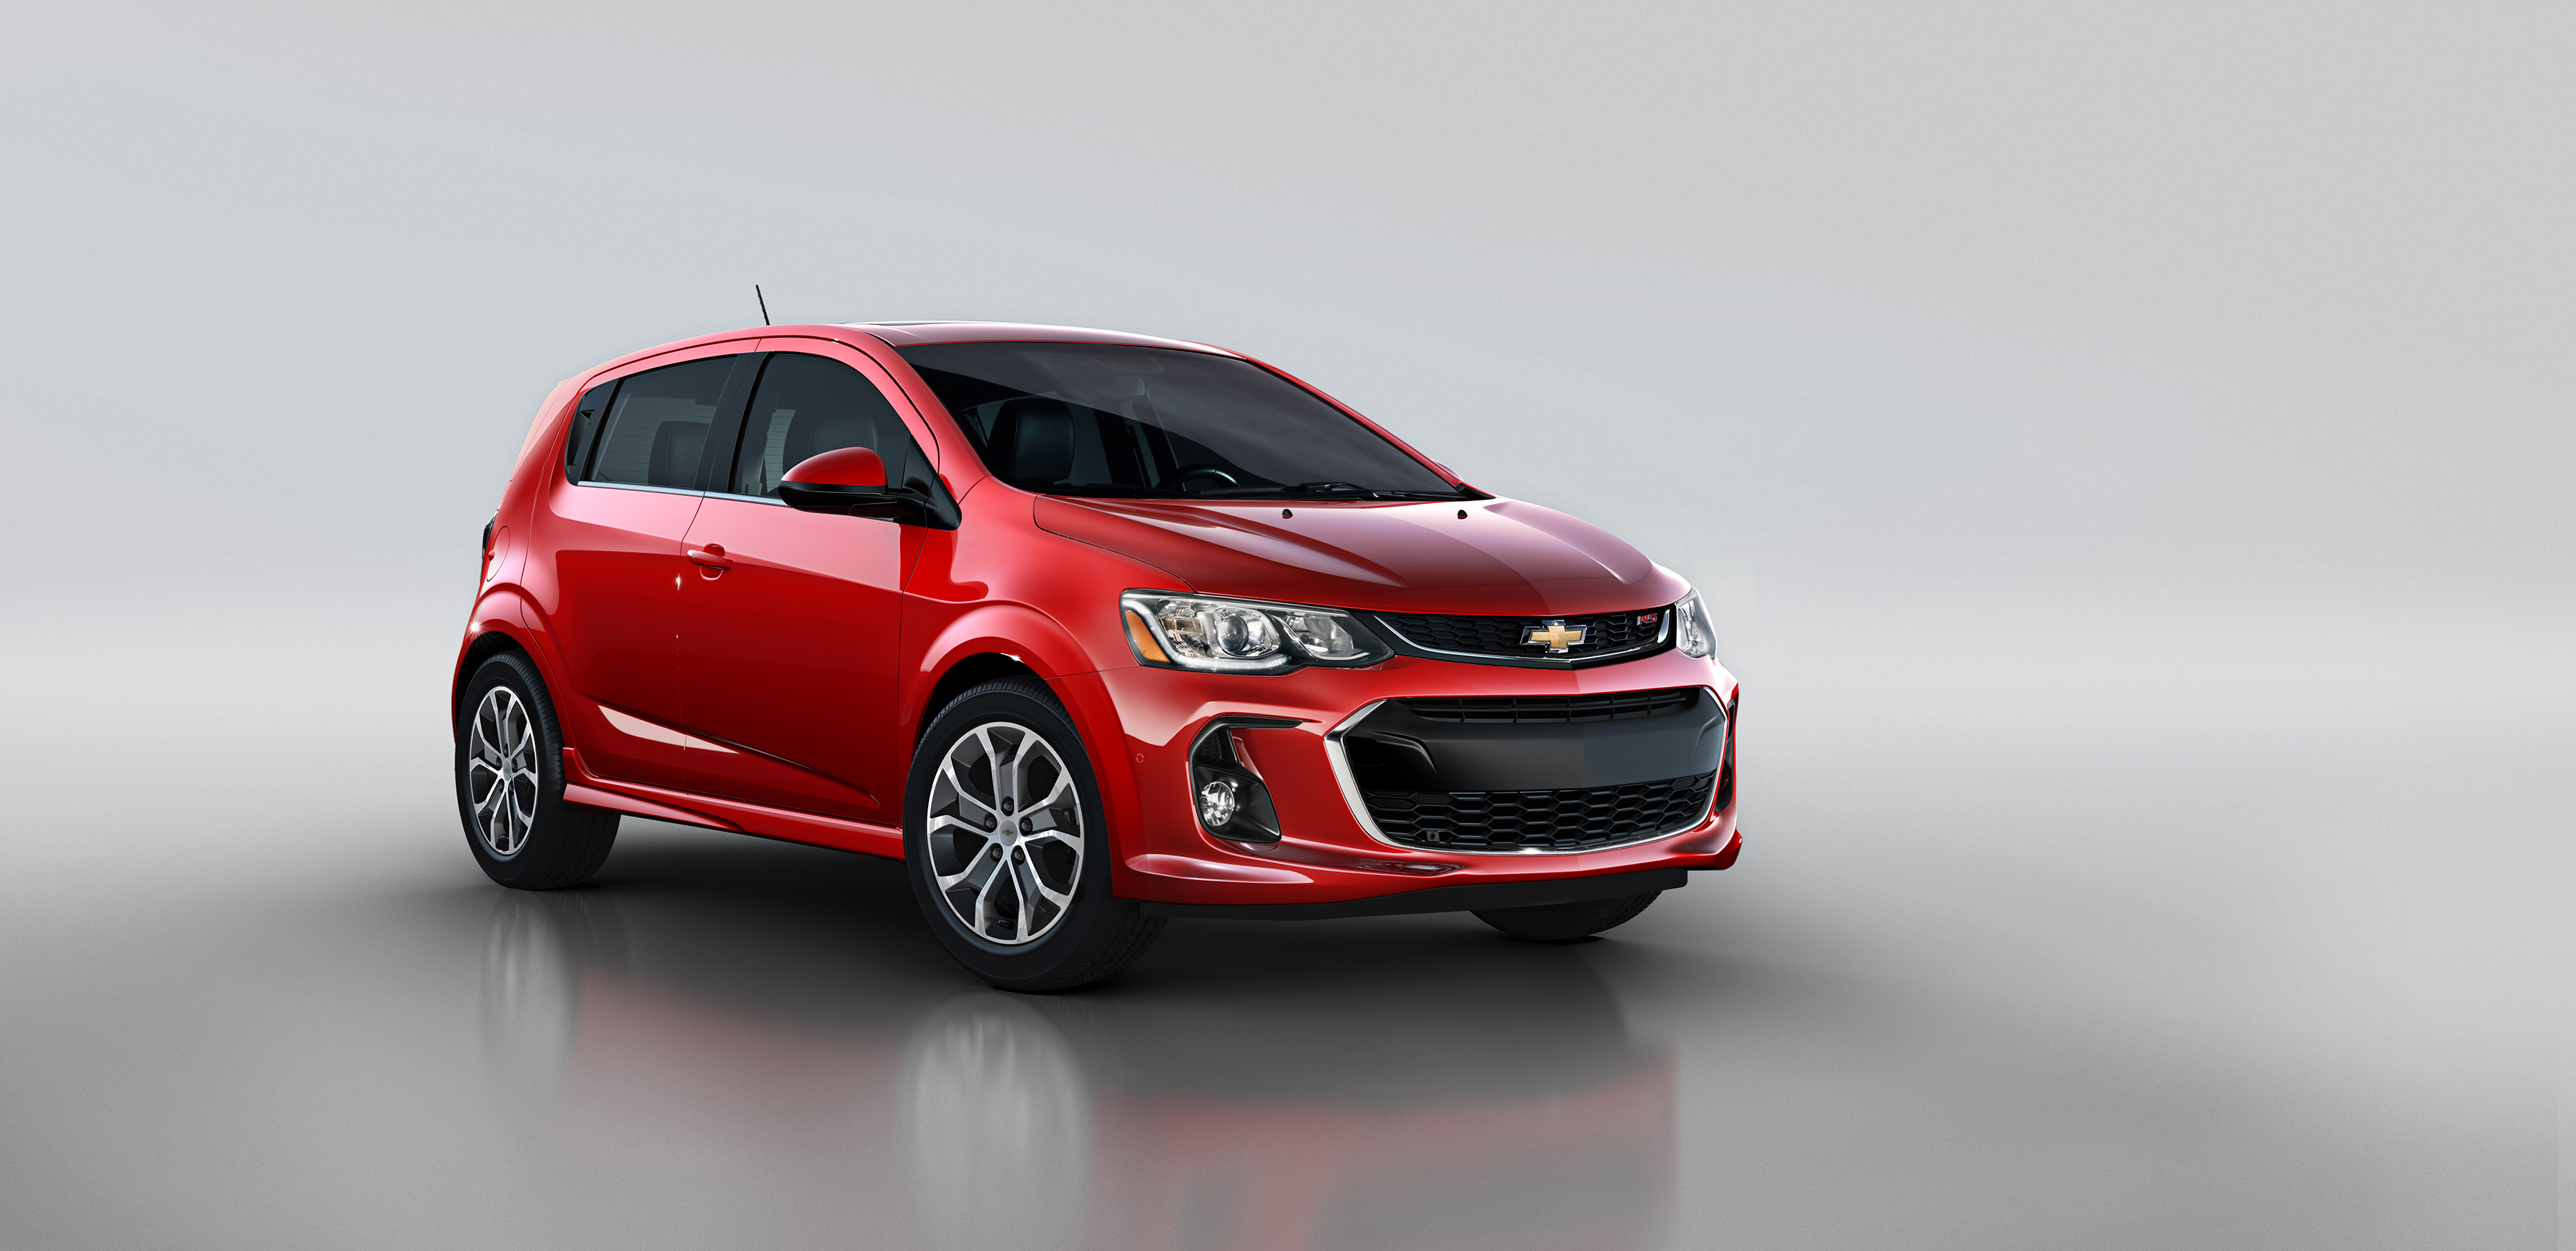 Chevrolet Sonic Repair Manual: Sunroof Description and Operation (Tilt and Slide)